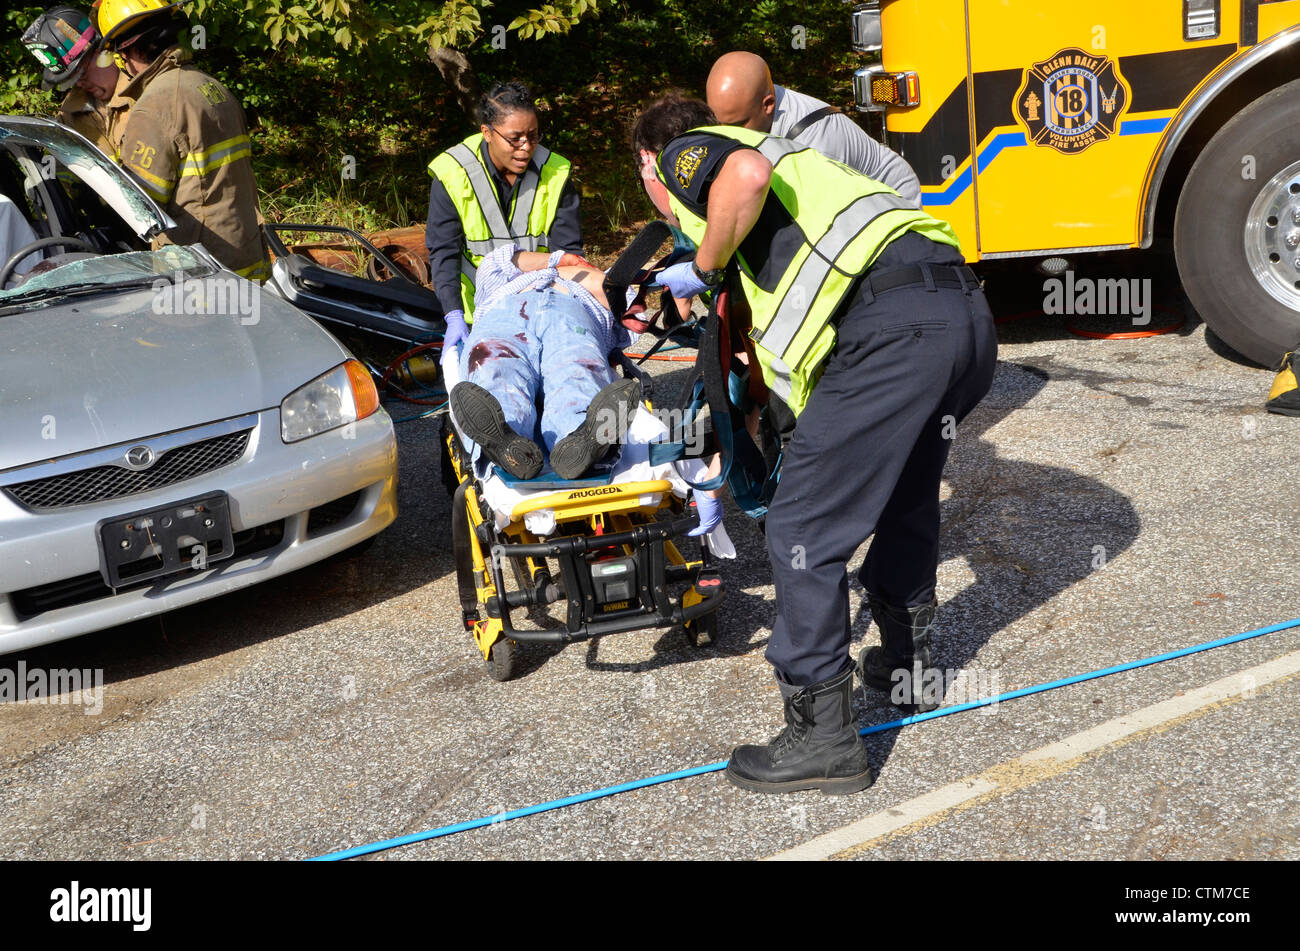 Rescuers rush a badly injured woman to a waiting ambulance in Glendale, Maryland - Stock Image